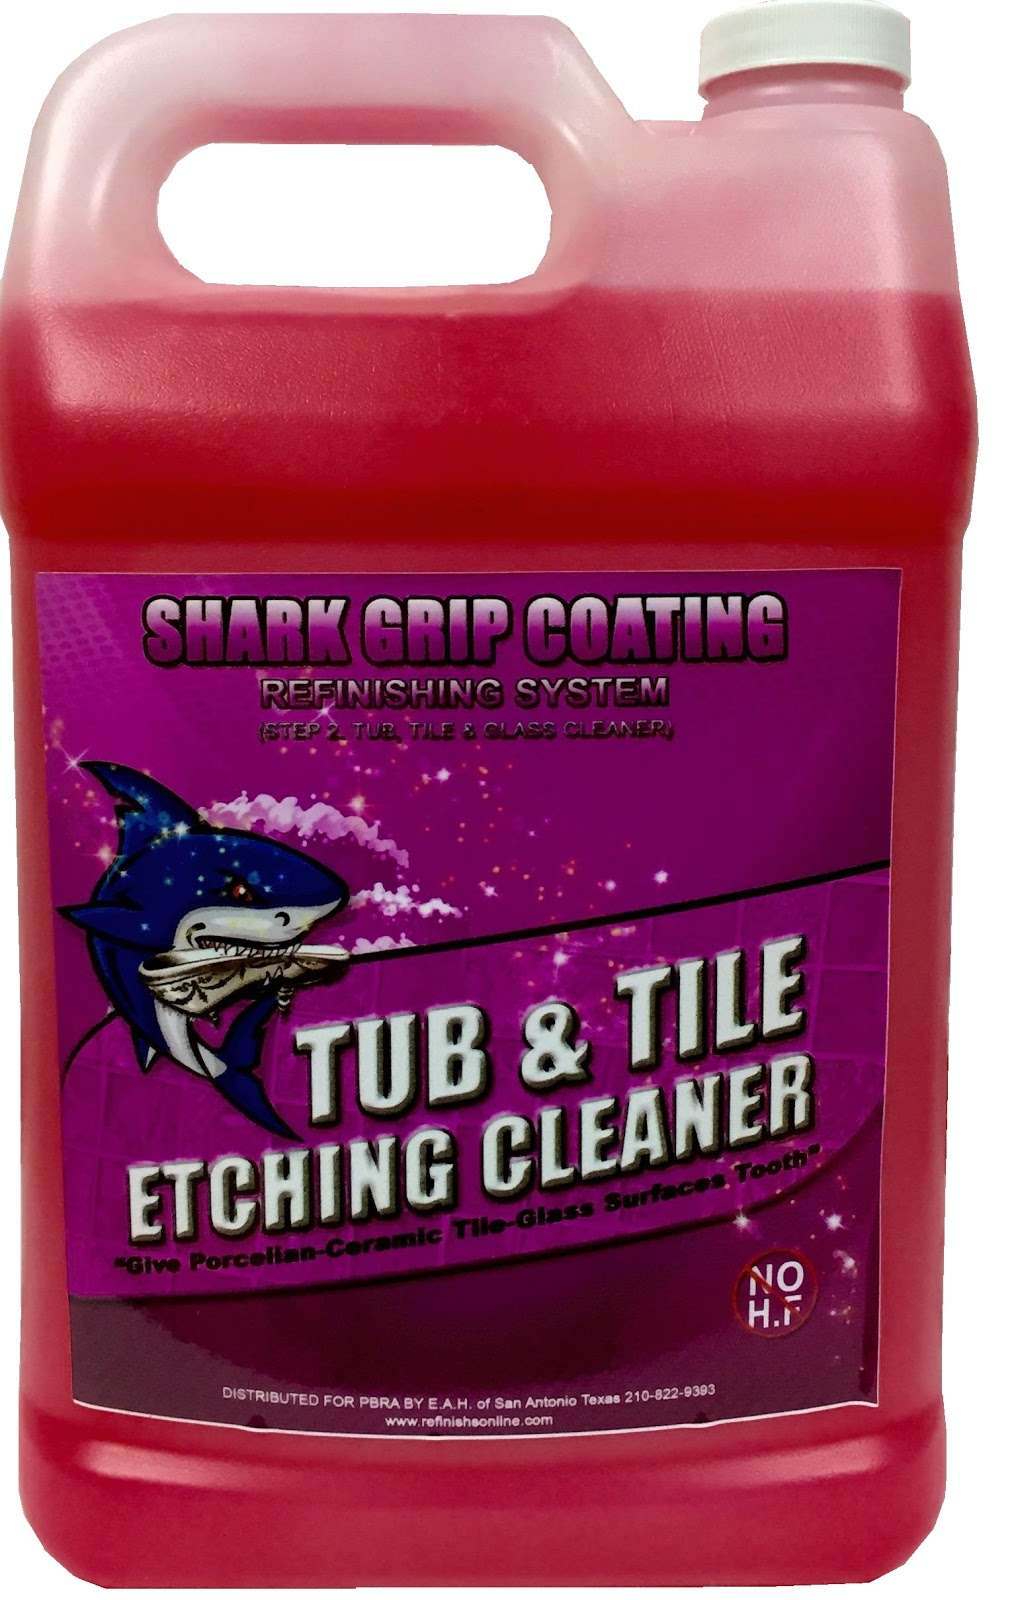 SharkGrip Bathtub Tile & Counter Top Refinishing Coatings - home goods store  | Photo 2 of 5 | Address: 136 El Mio Dr, San Antonio, TX 78216, USA | Phone: (210) 822-9393